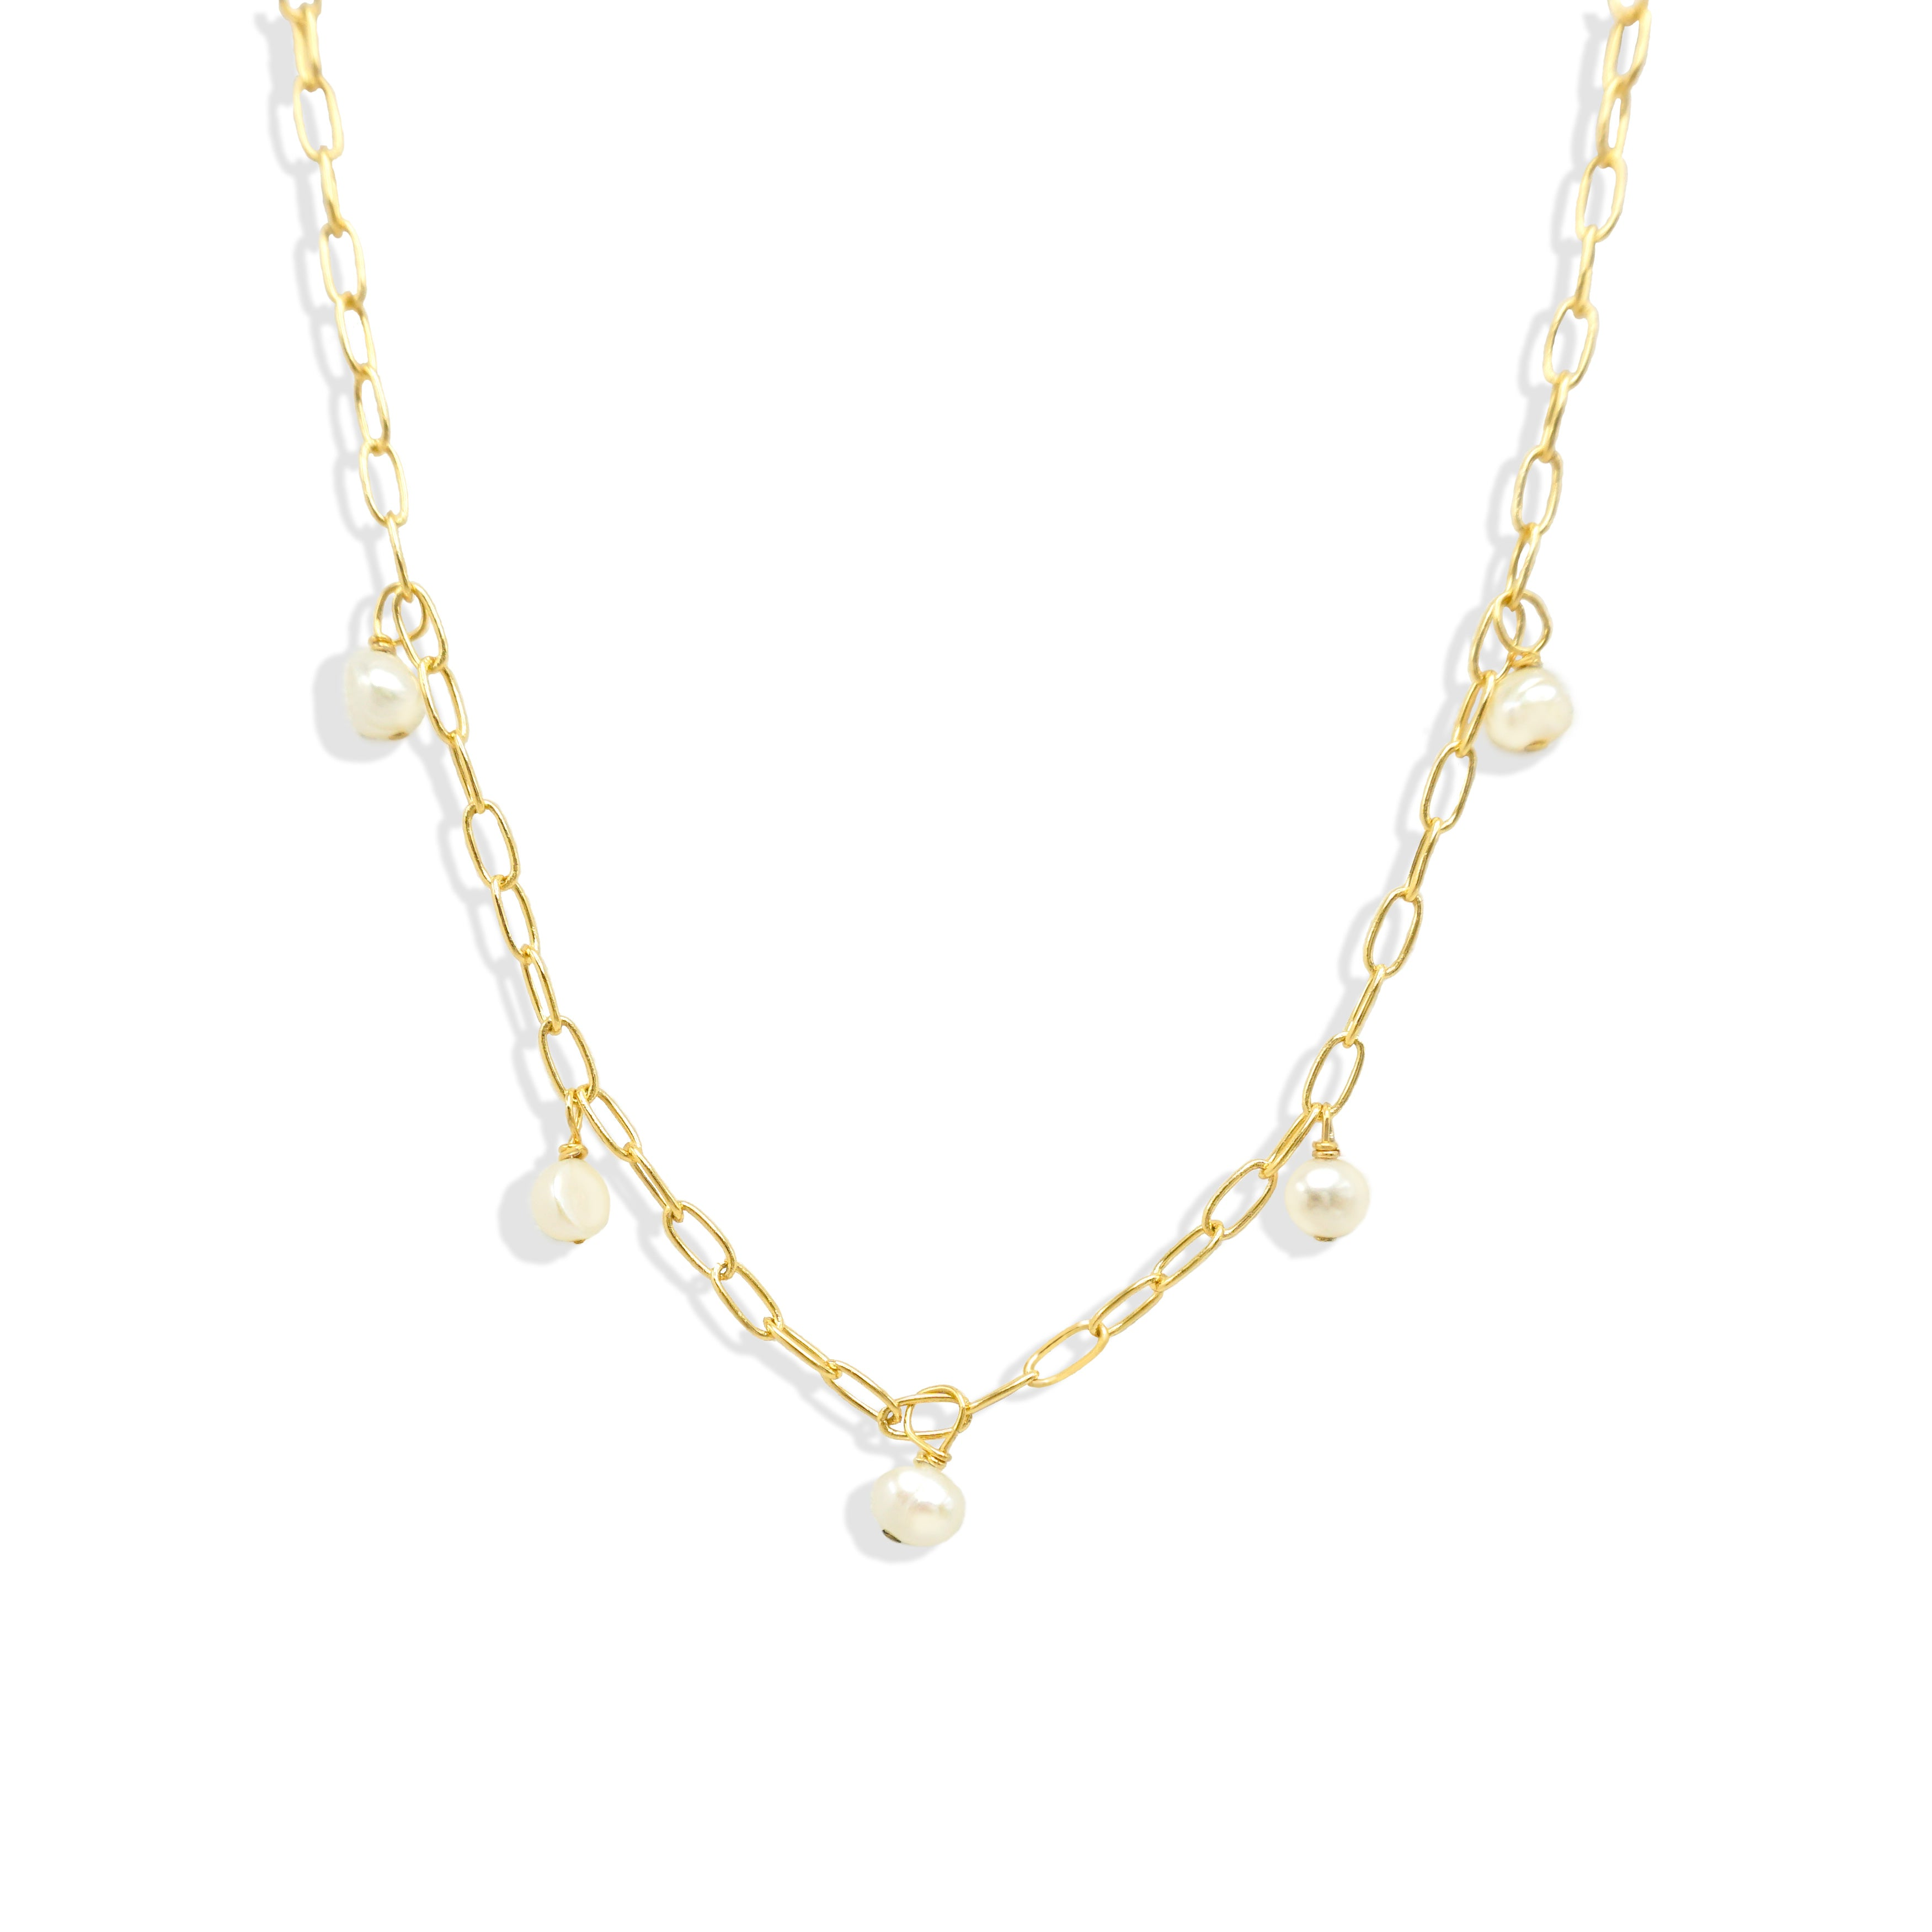 Floating White Freshwater Pearl Necklace - IT STYLE BOX